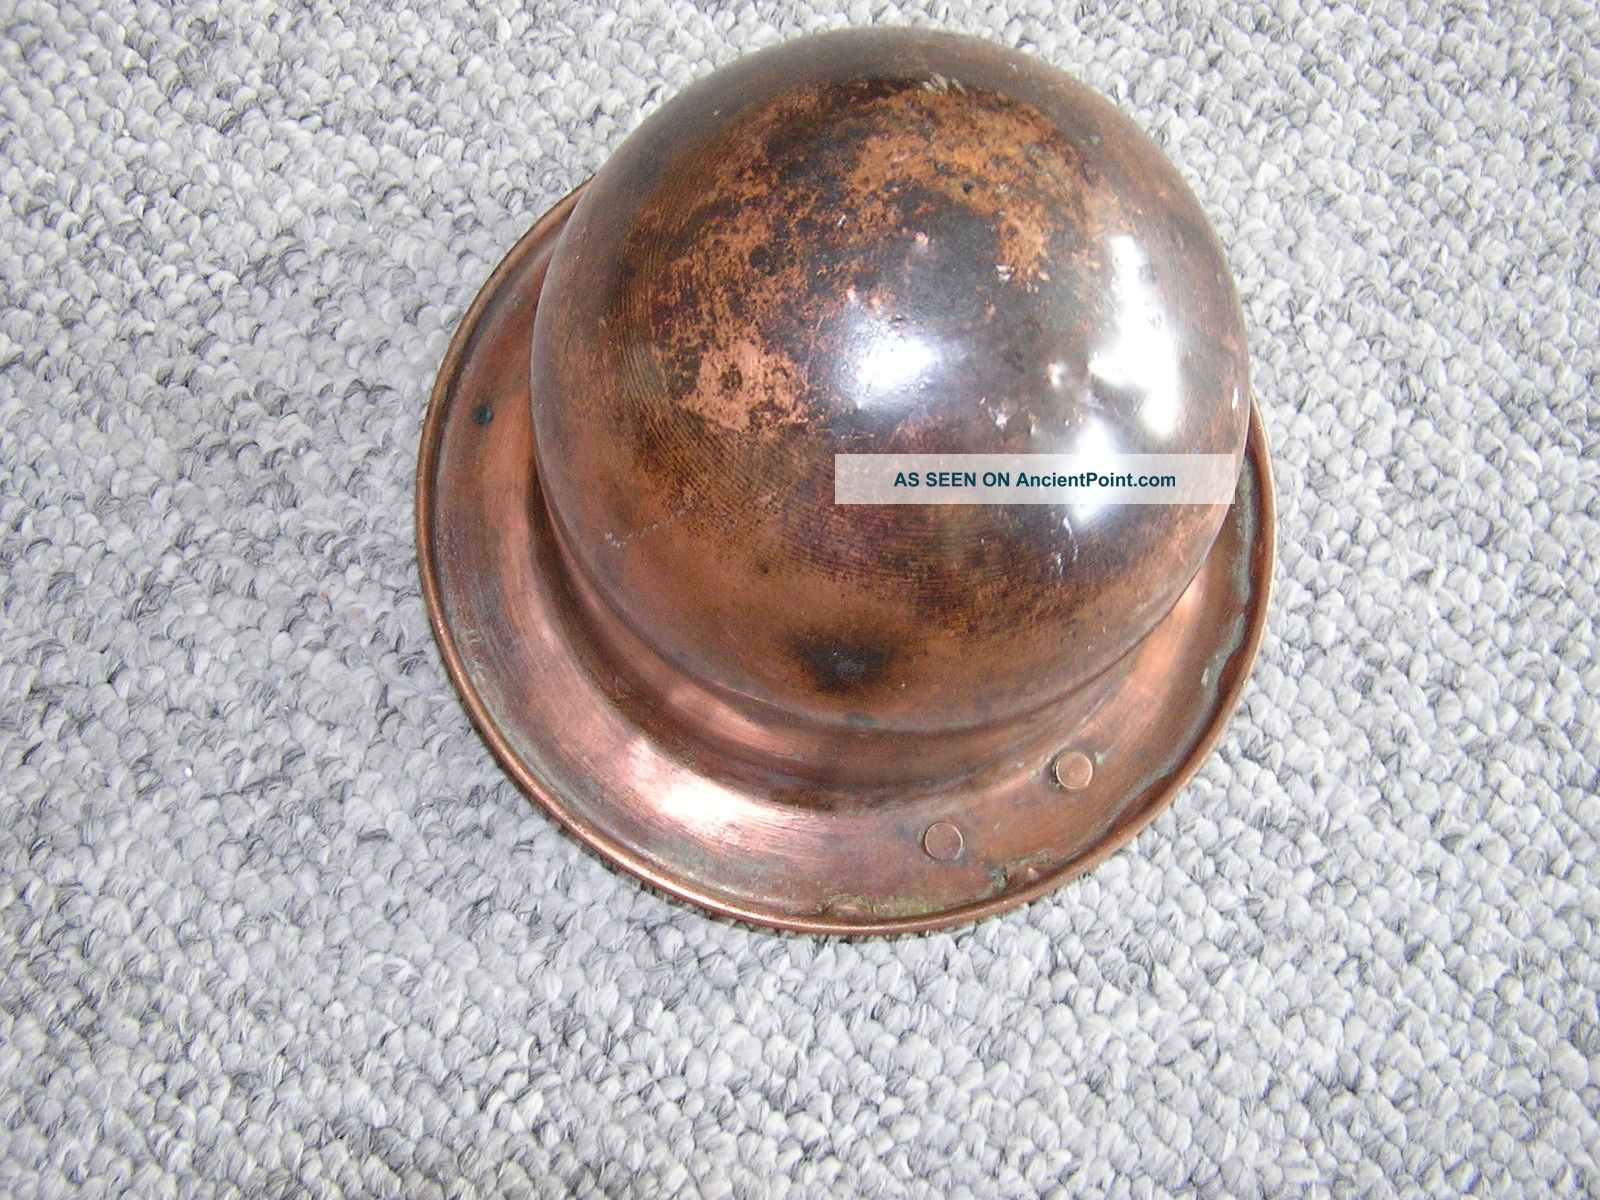 Antique liberty electric copper wax melting pot 1930 s metalware